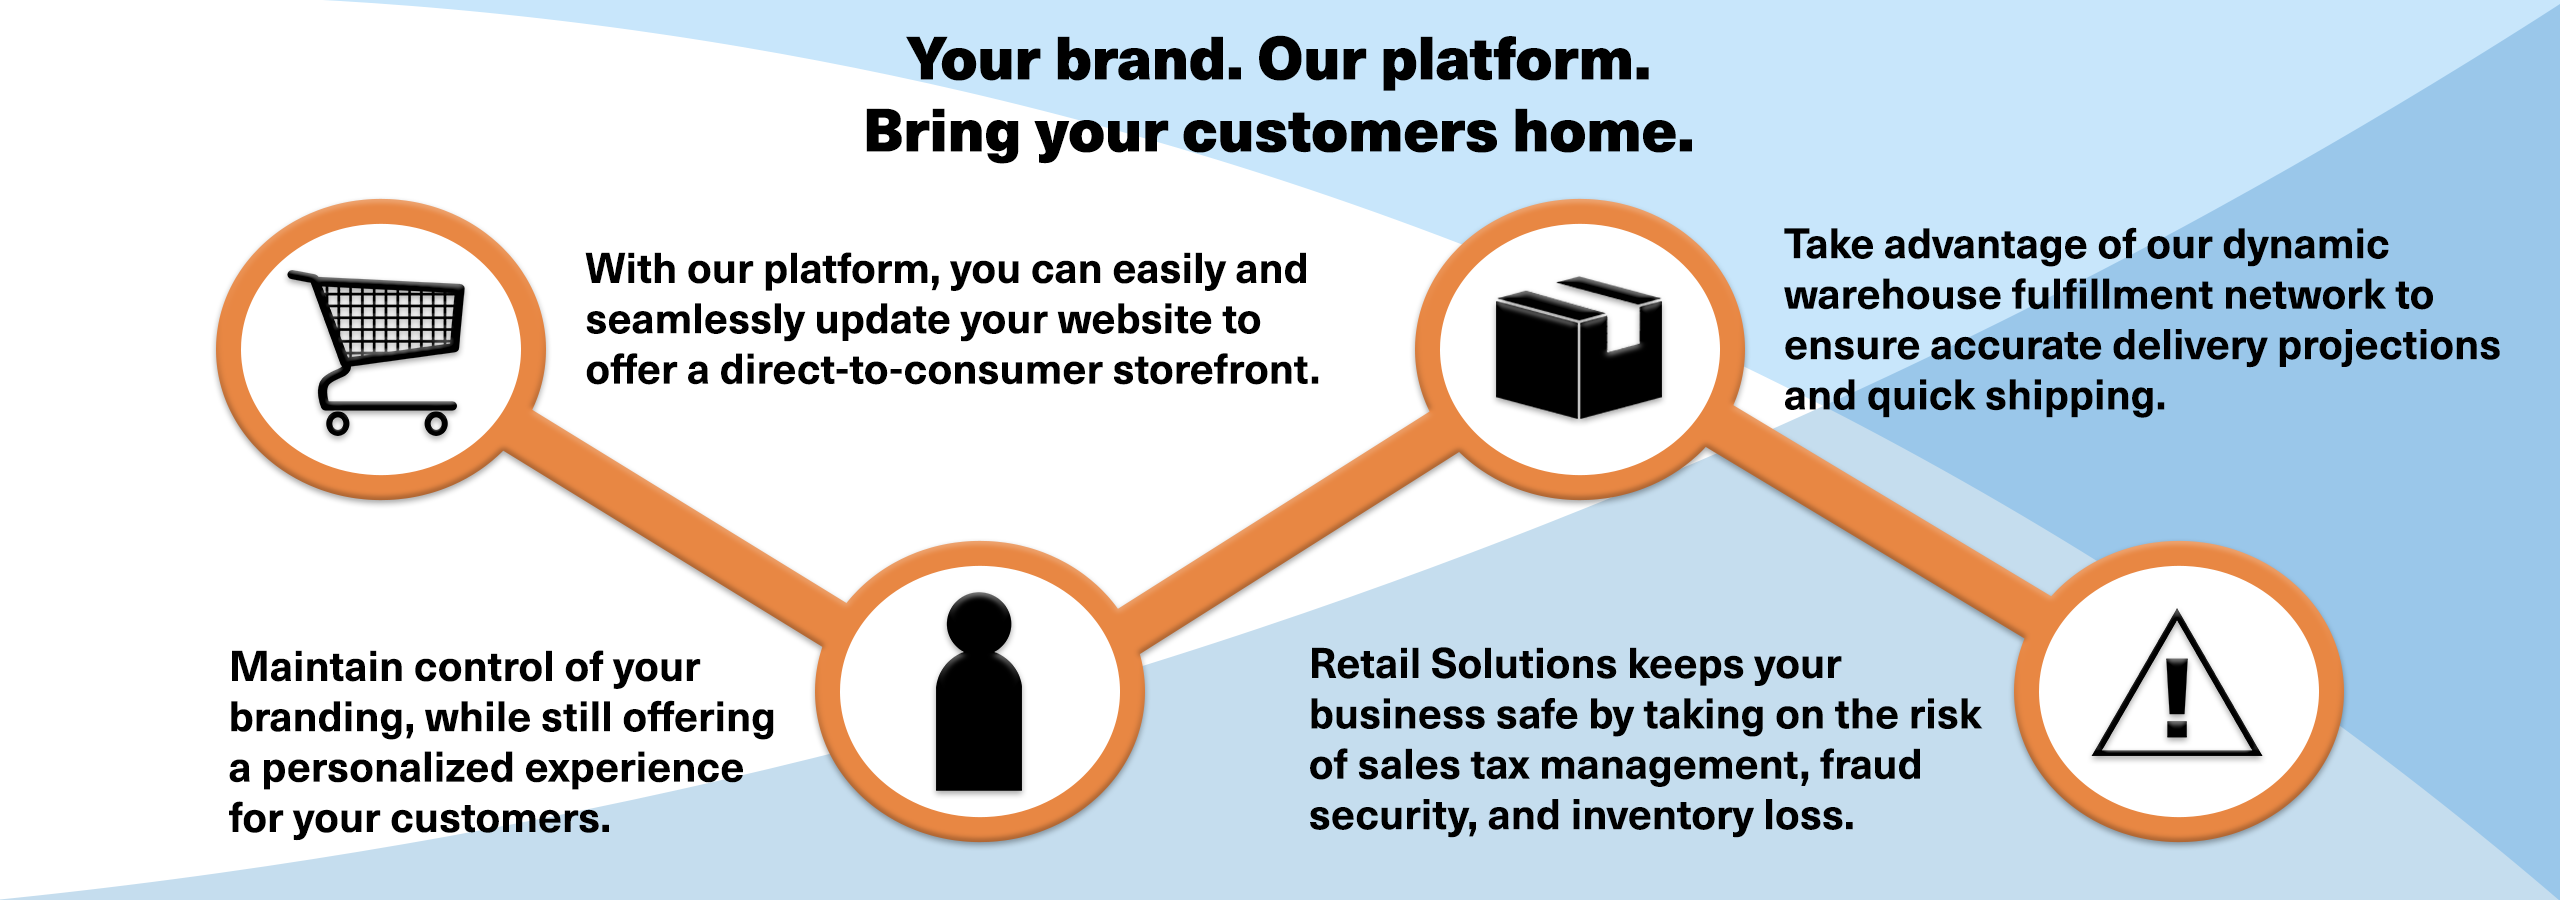 With our platform you can: easily update your website to offer a direct to consumer storefront, maintain control of your branding, take advantage of our dynamic warehouse fulfillment network, and keep your business safe from risks ranging from fraud security to inventory loss.